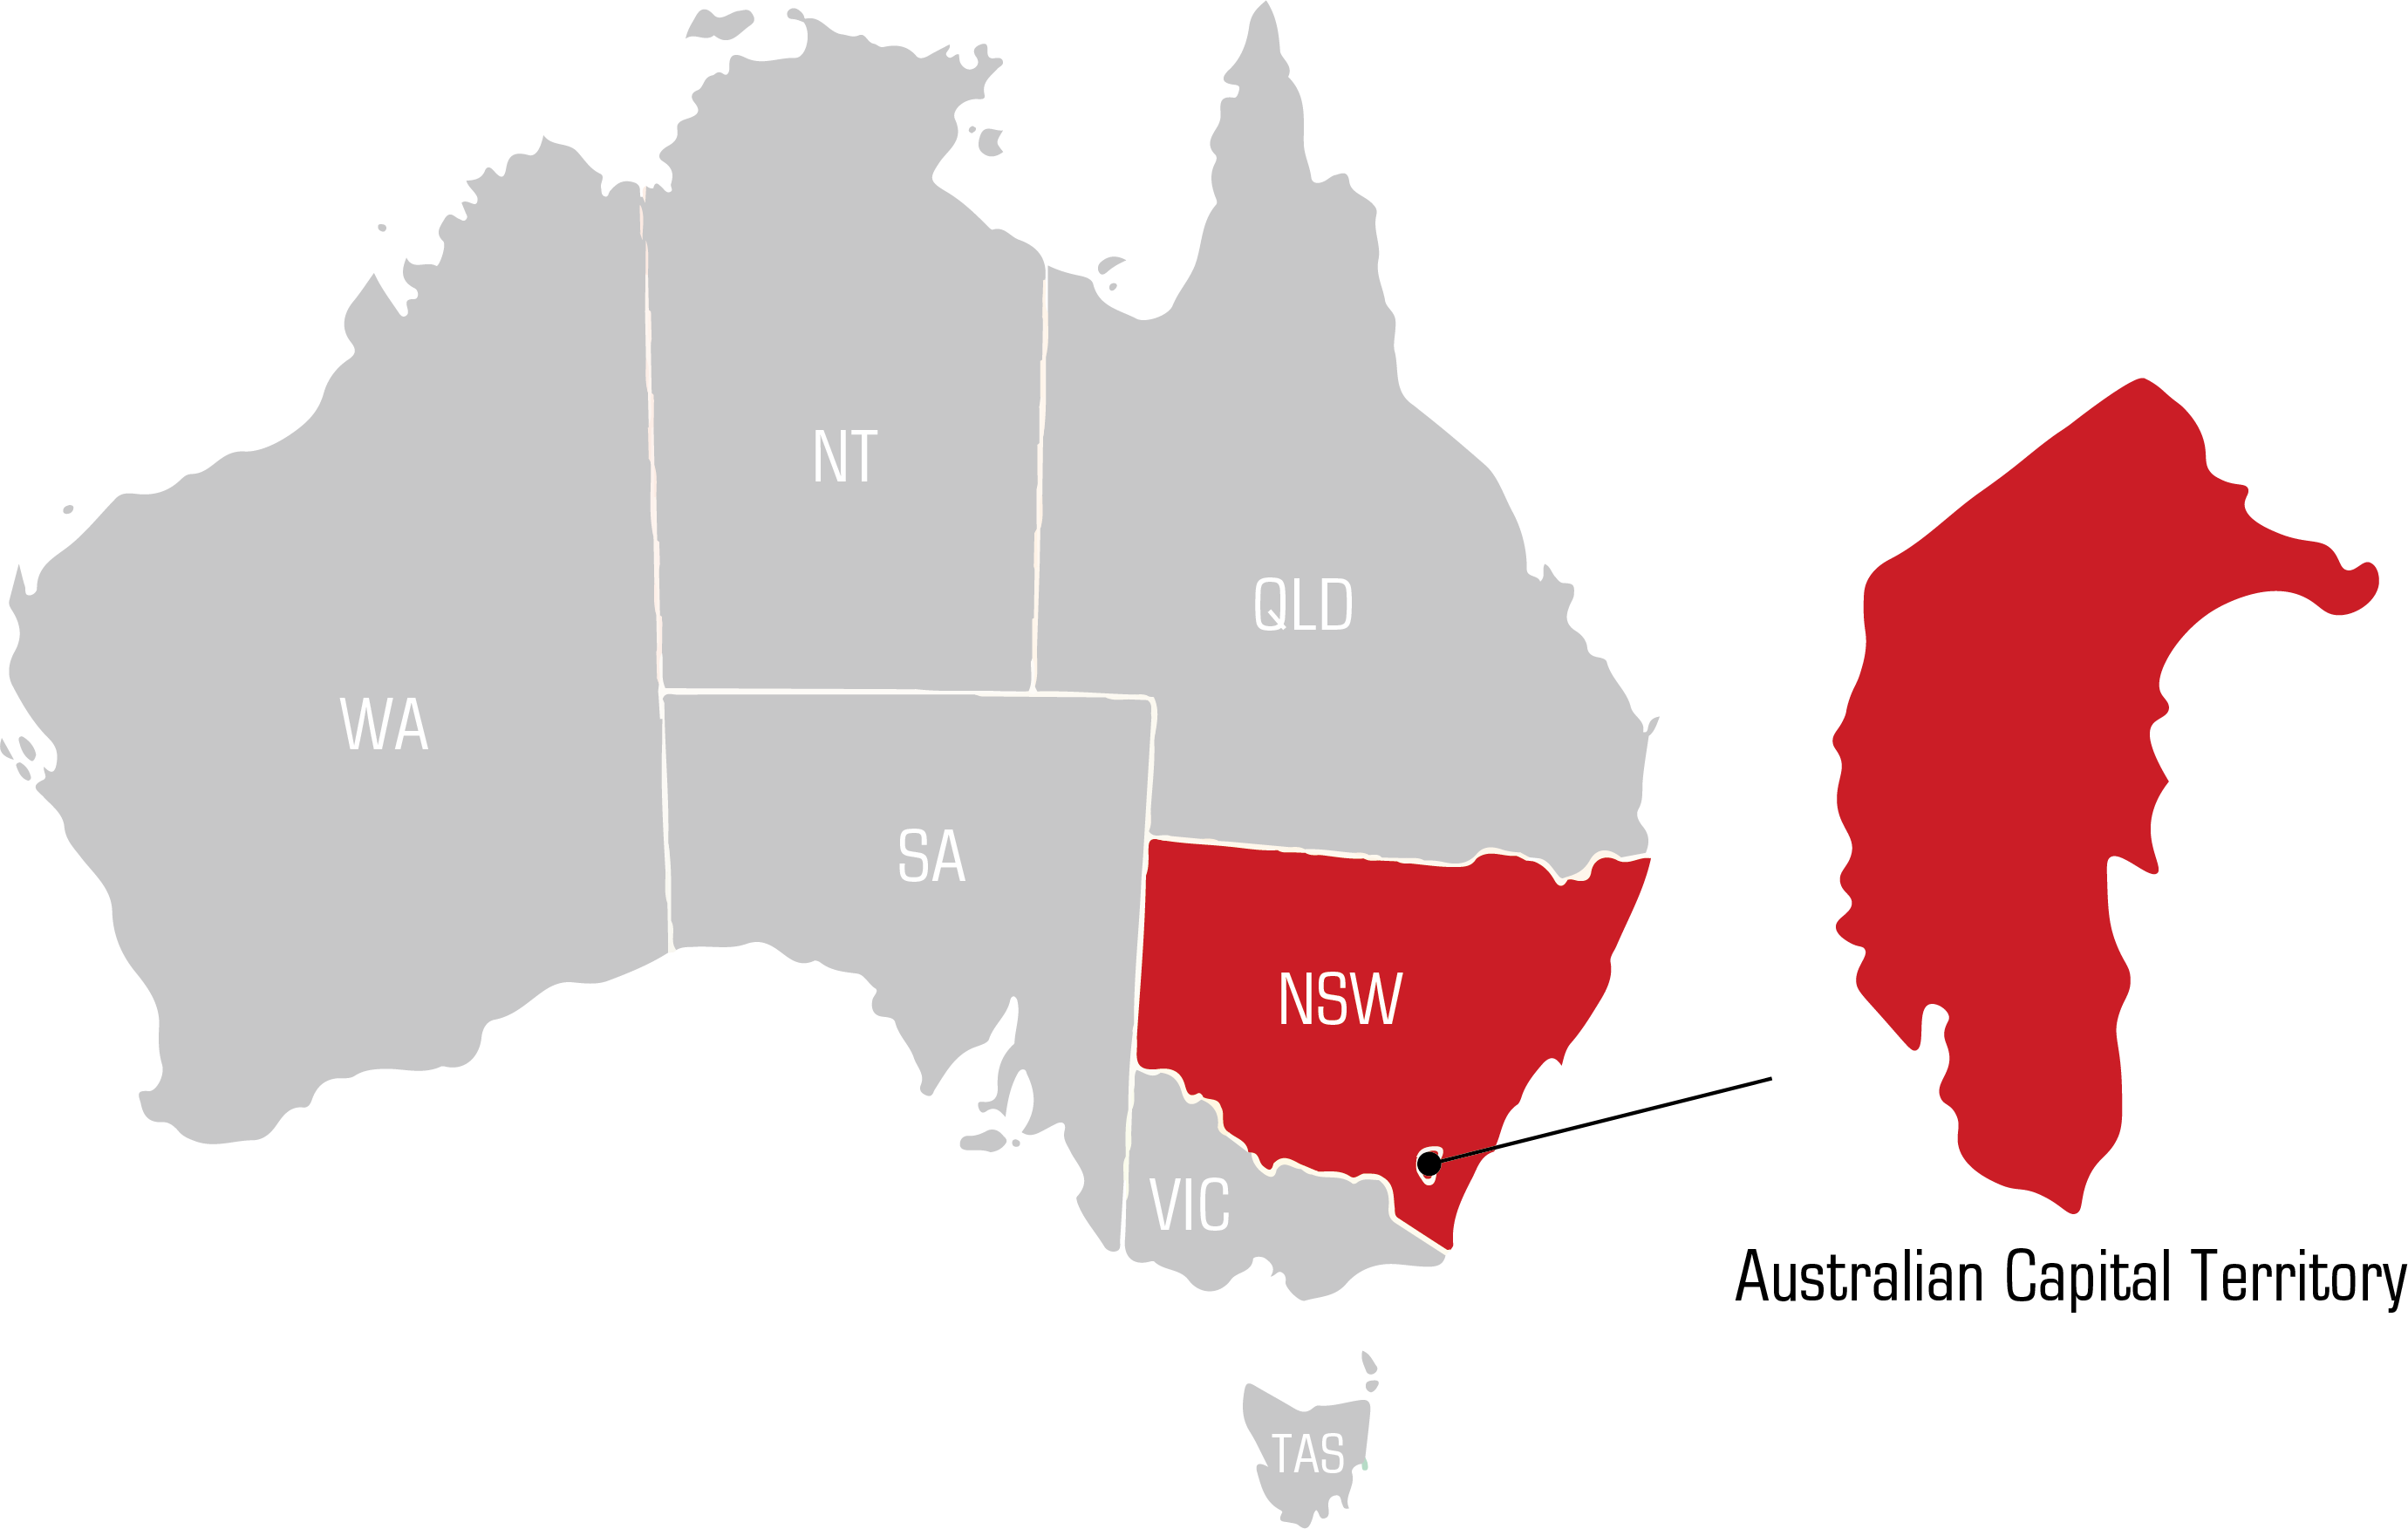 QWS ACT Australian Capital Territory Welding Supplies map